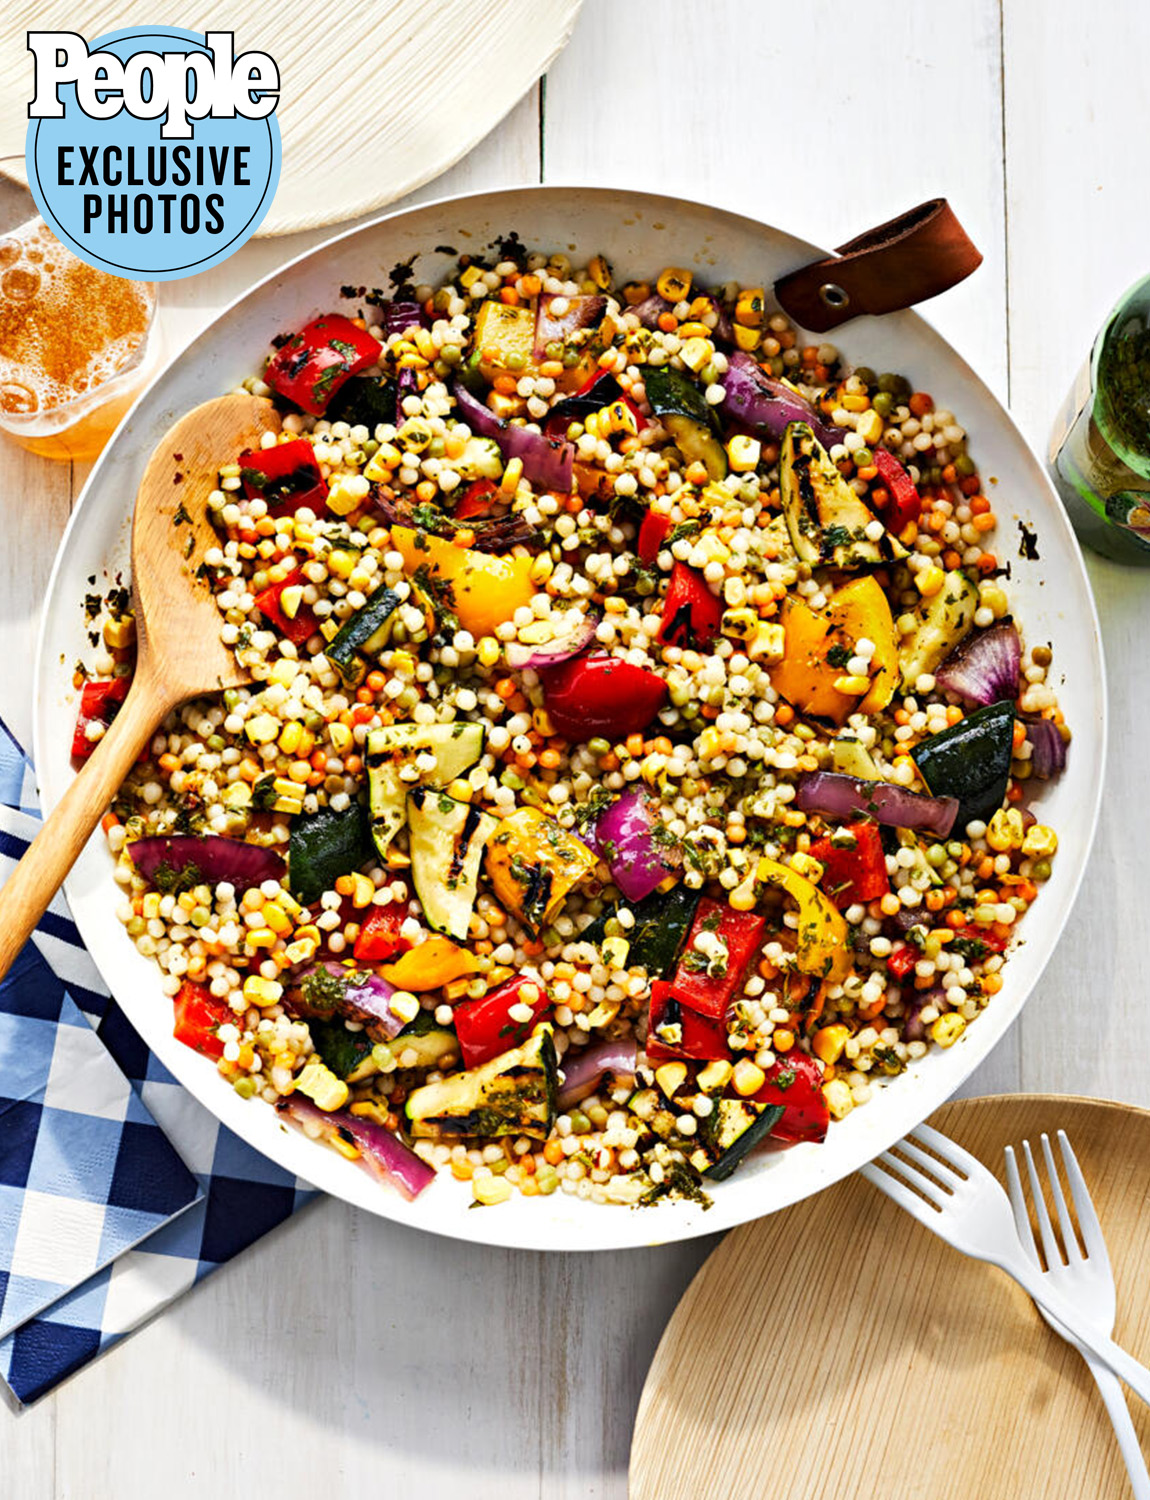 Melba Wilson's Grilled Vegetable and Couscous Salad